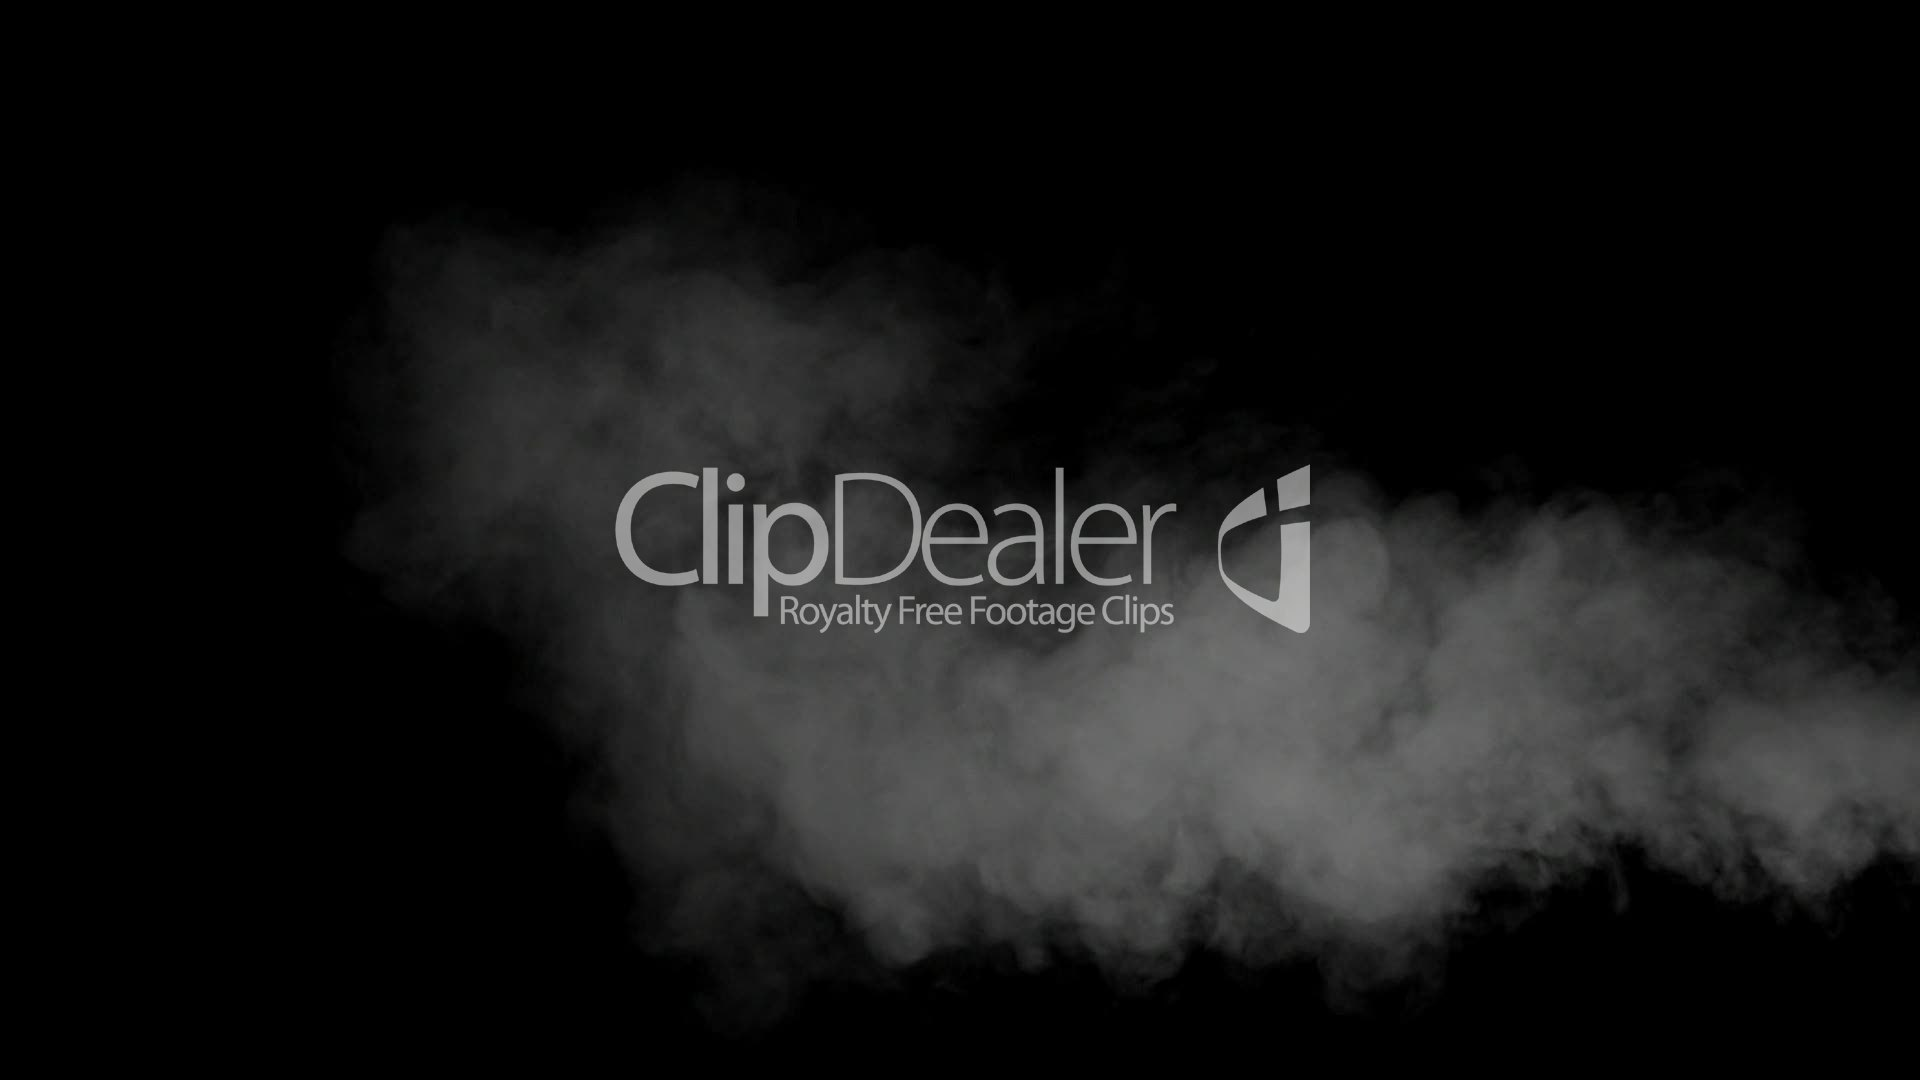 Smoke drift against black background: Royalty-free video and stock